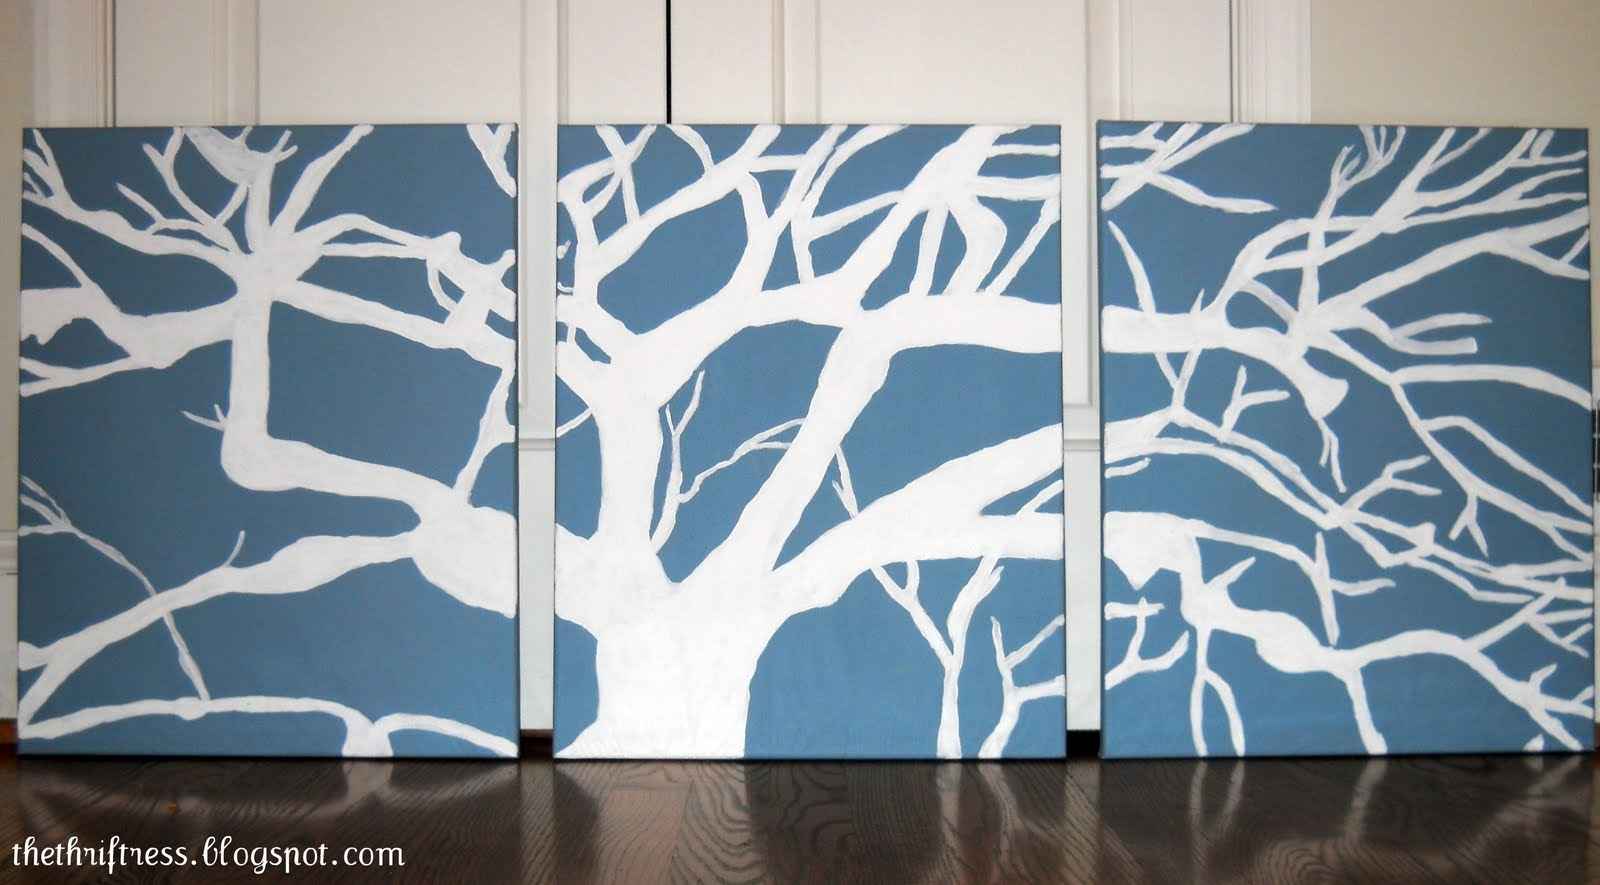 Diy Wall Art Stencils Paint Fabric – Dma Homes | #37854 Throughout Latest Fabric Tree Wall Art (View 3 of 15)